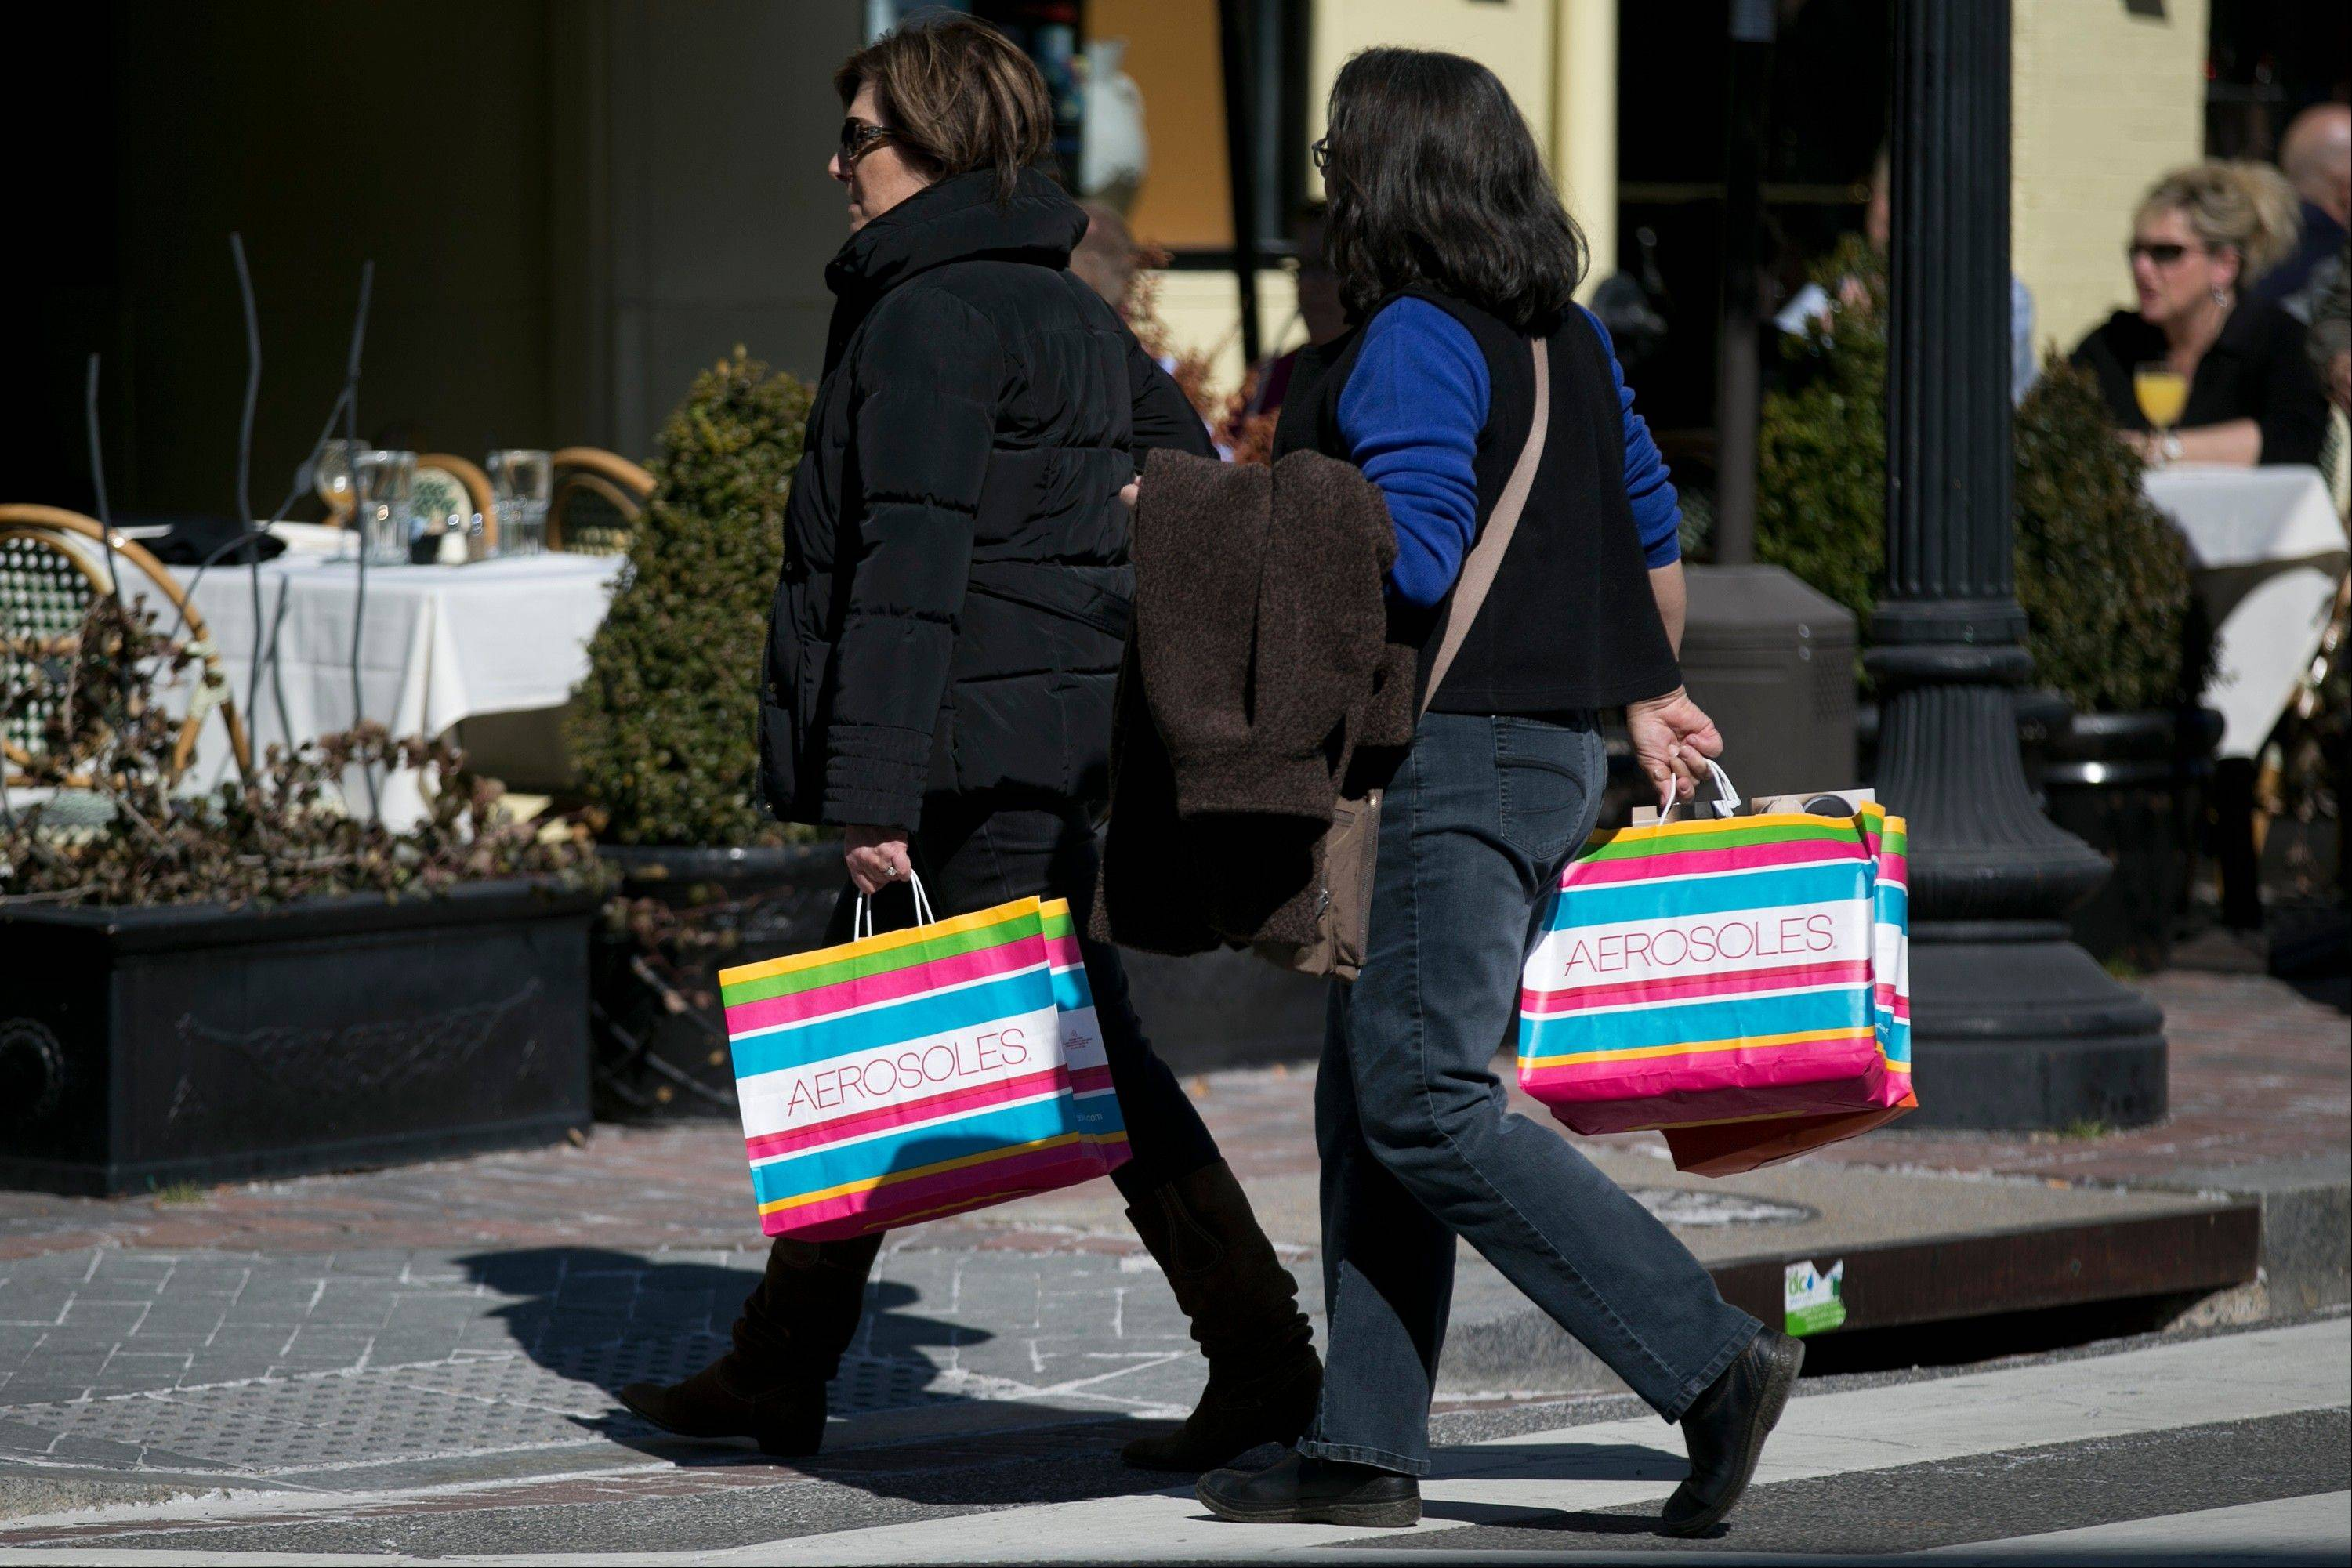 Bloomberg News file photo Women carry Aerosoles shopping bags in the Georgetown neighborhood of Washington, D.C. Americans spent at the fastest pace in five months in February, boosting retail spending 1.1 percent compared with January, the Commerce Department reported Wednesday.